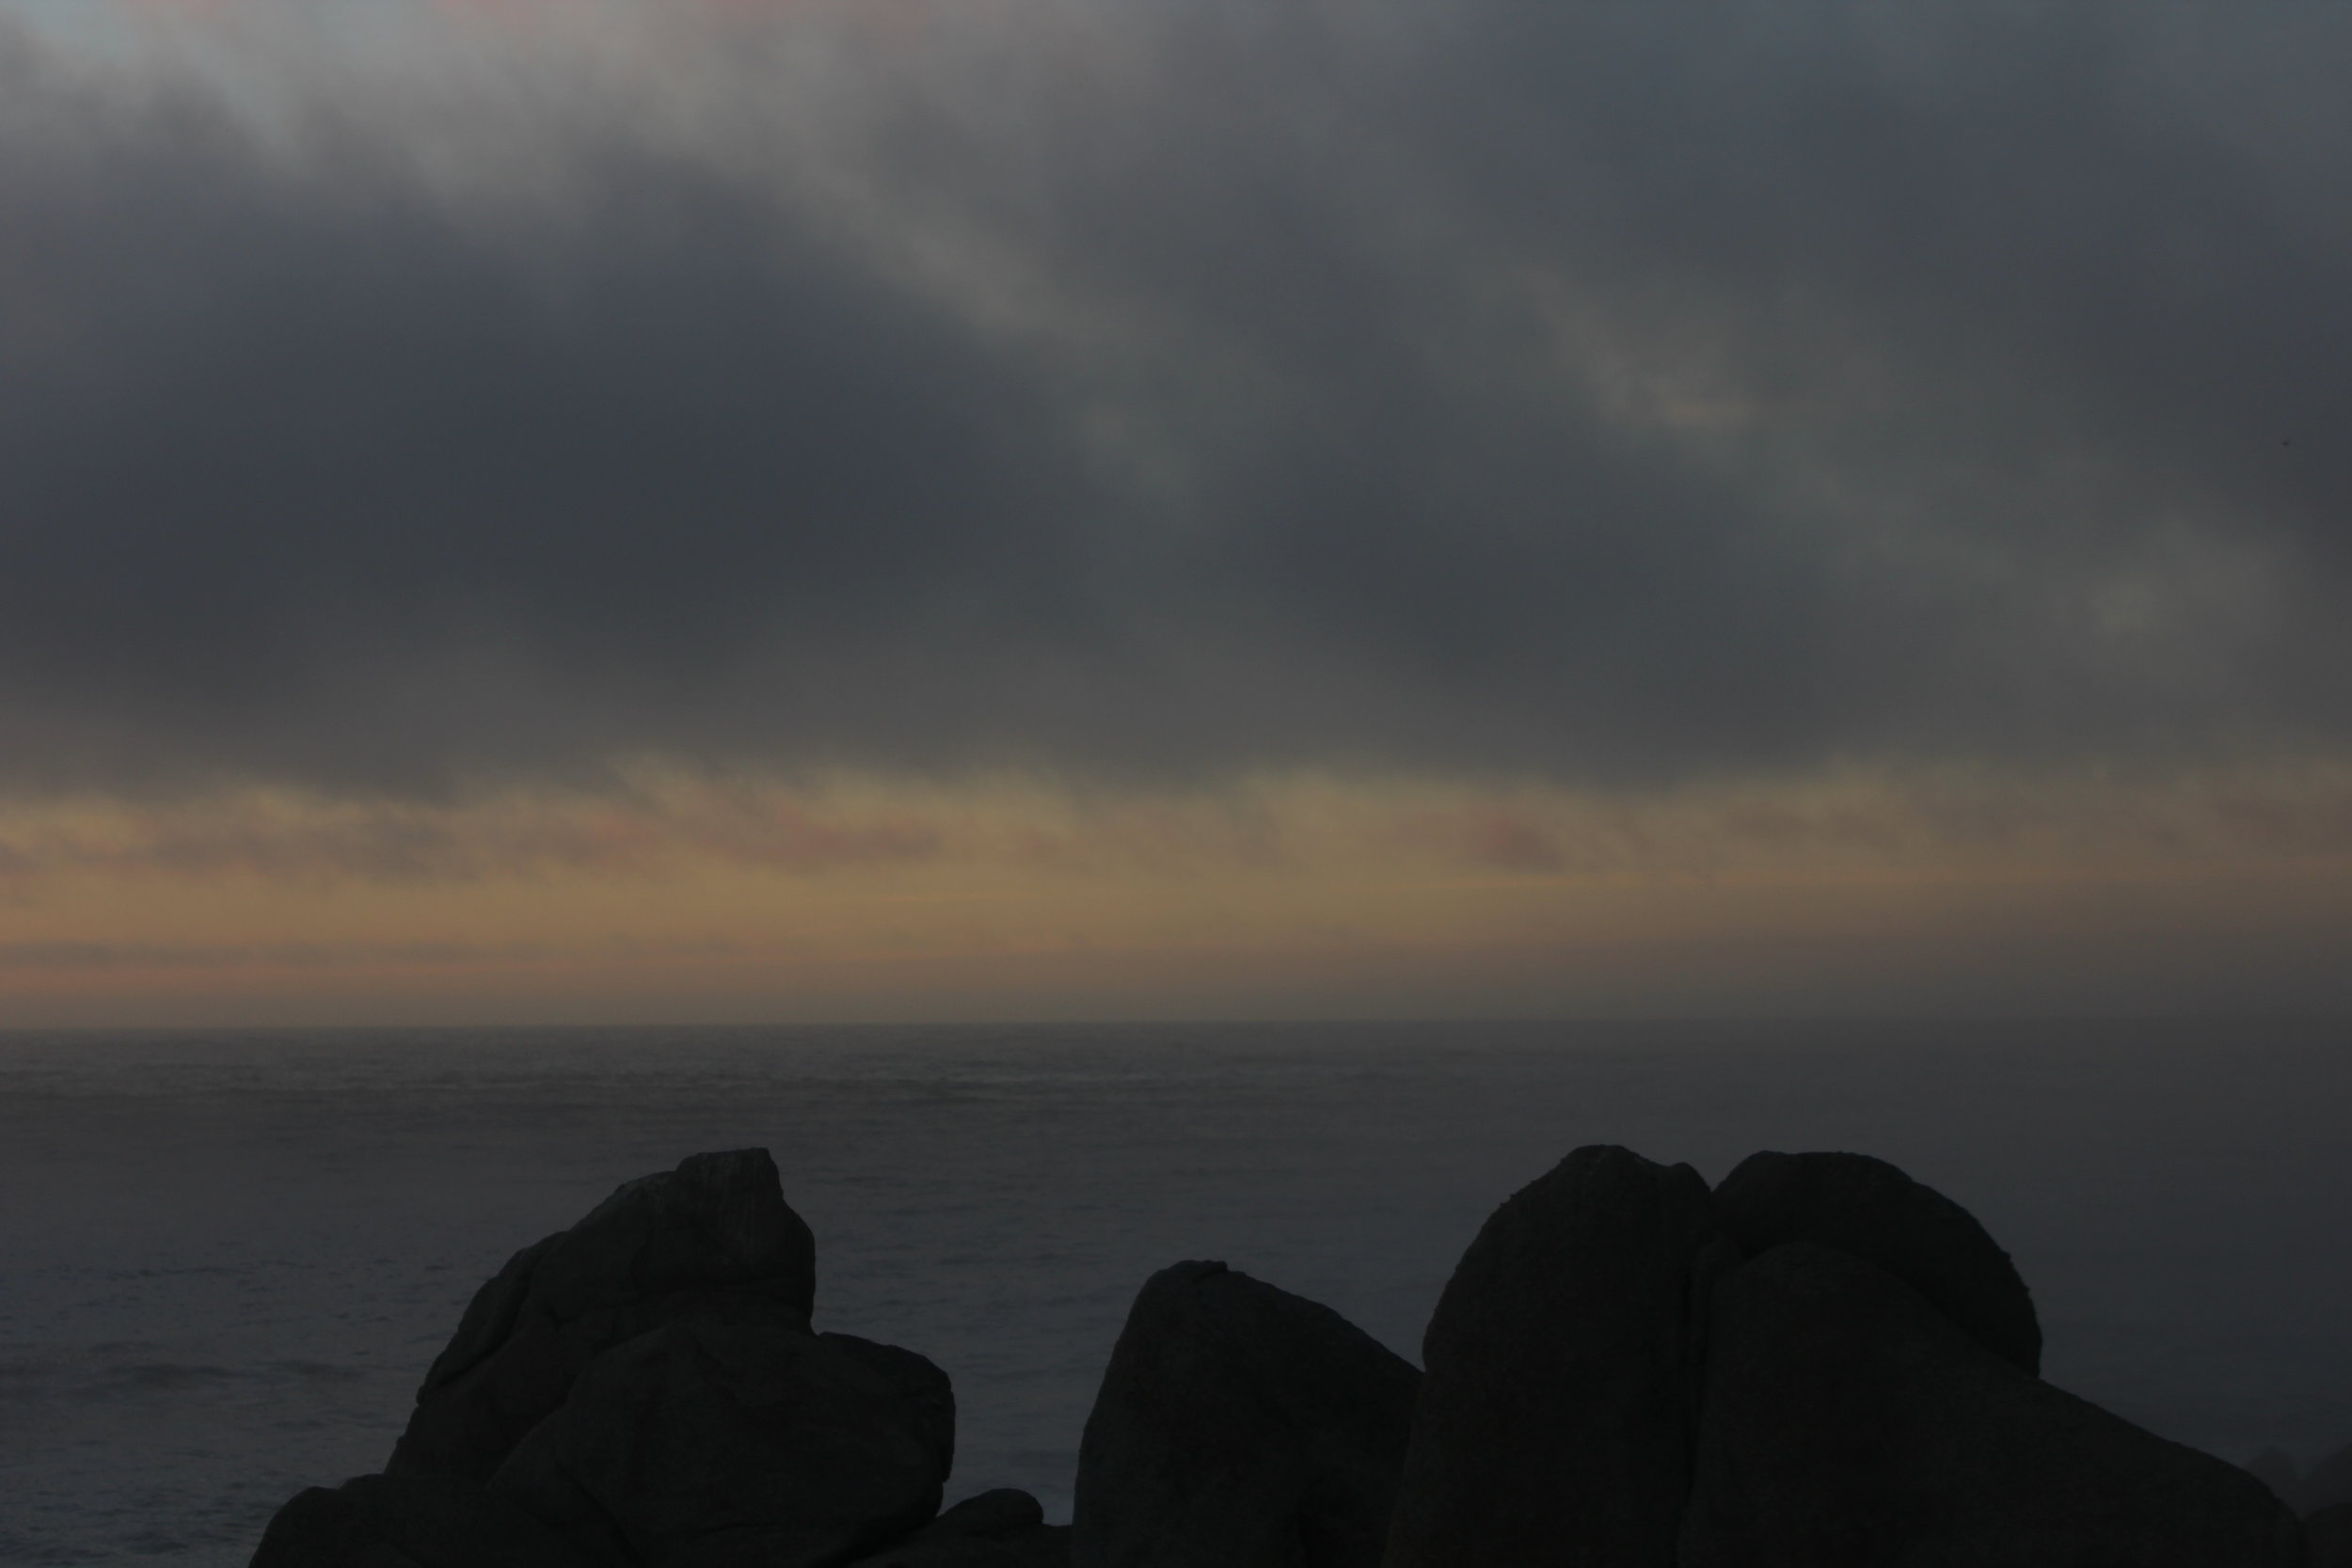 This is a raw un filtered photo. I visit during a cloudy day and I thought it was breath taking witnessing the sun kissing the ocean during sunset.